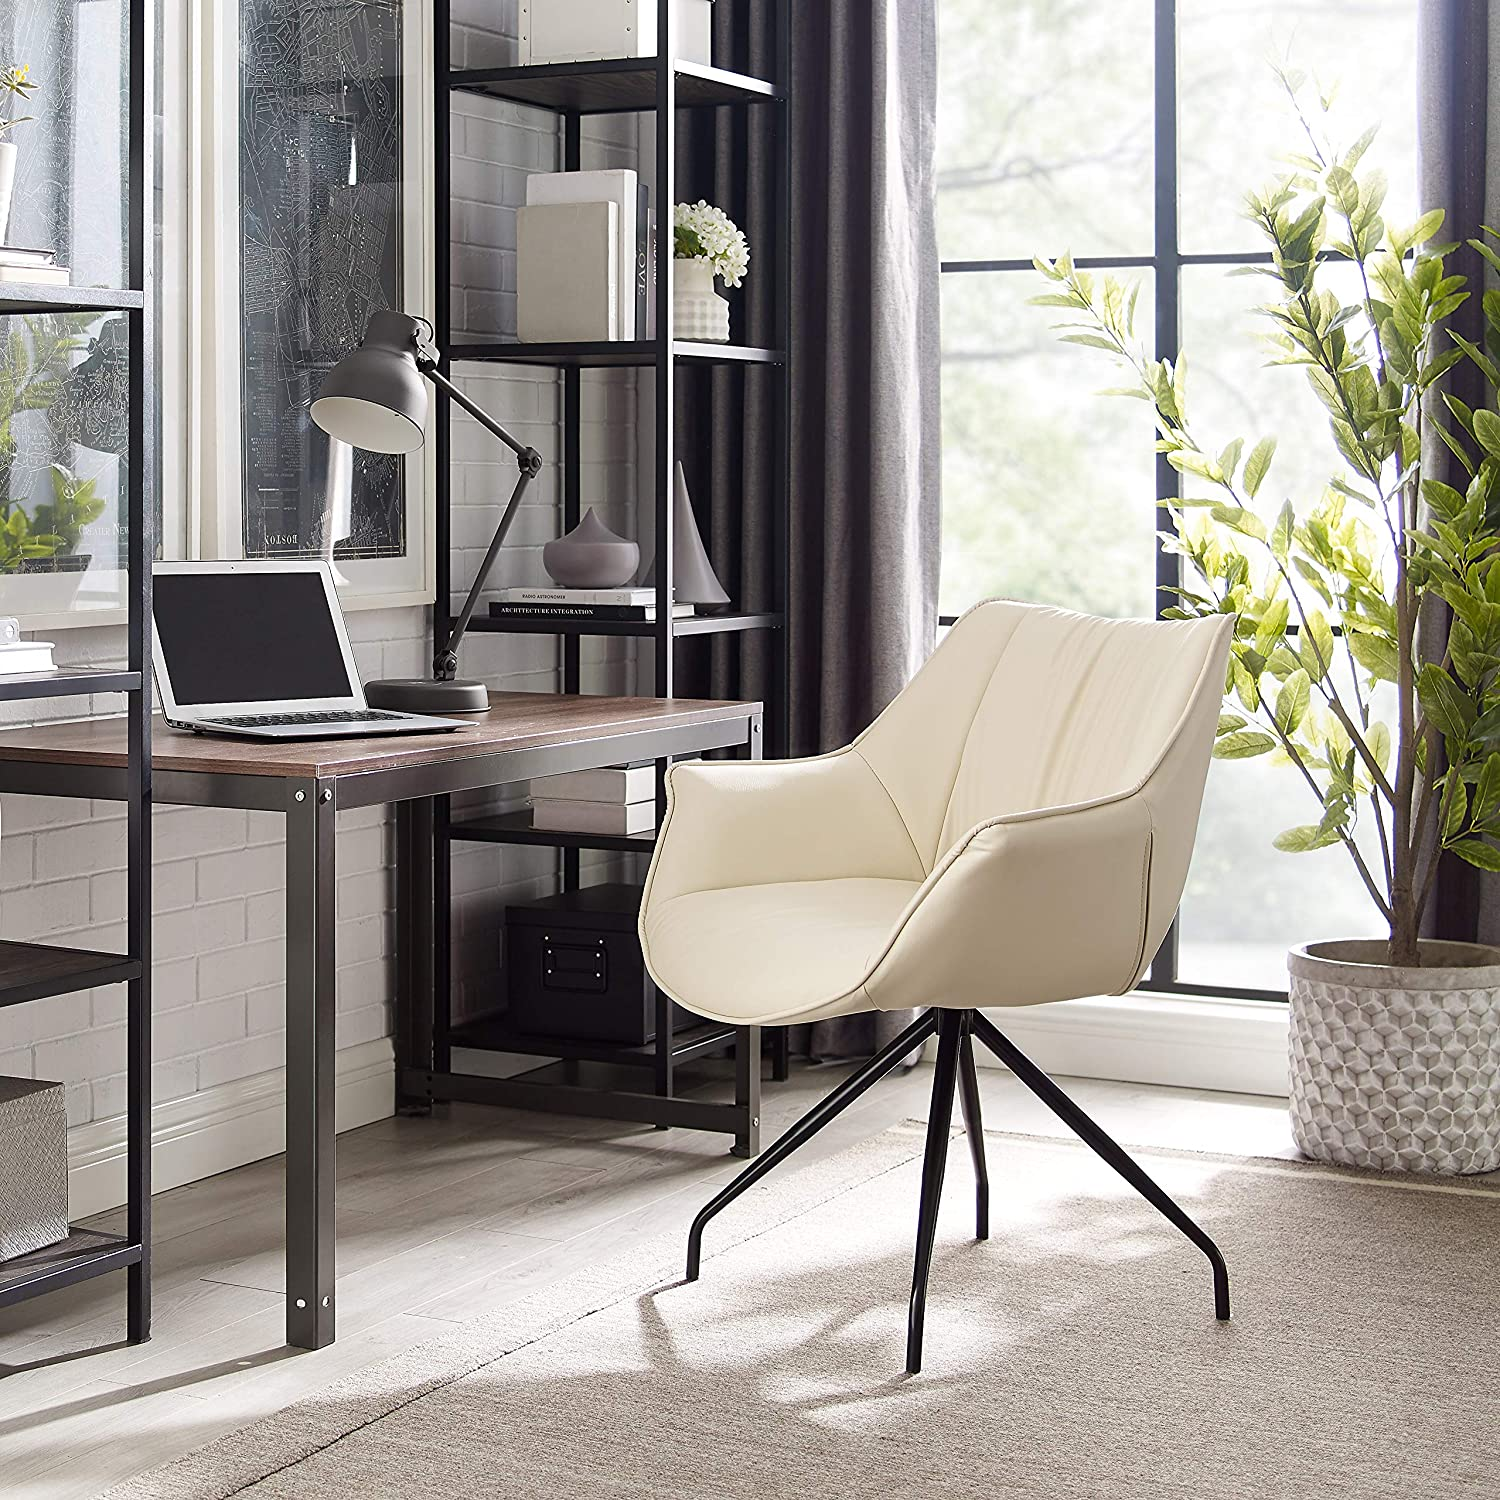 Volans Modern Mid Back Leather Upholstery Home Office Chair with Armrest, No Casters in Black Metal Legs Desk Chair, Matte Off White